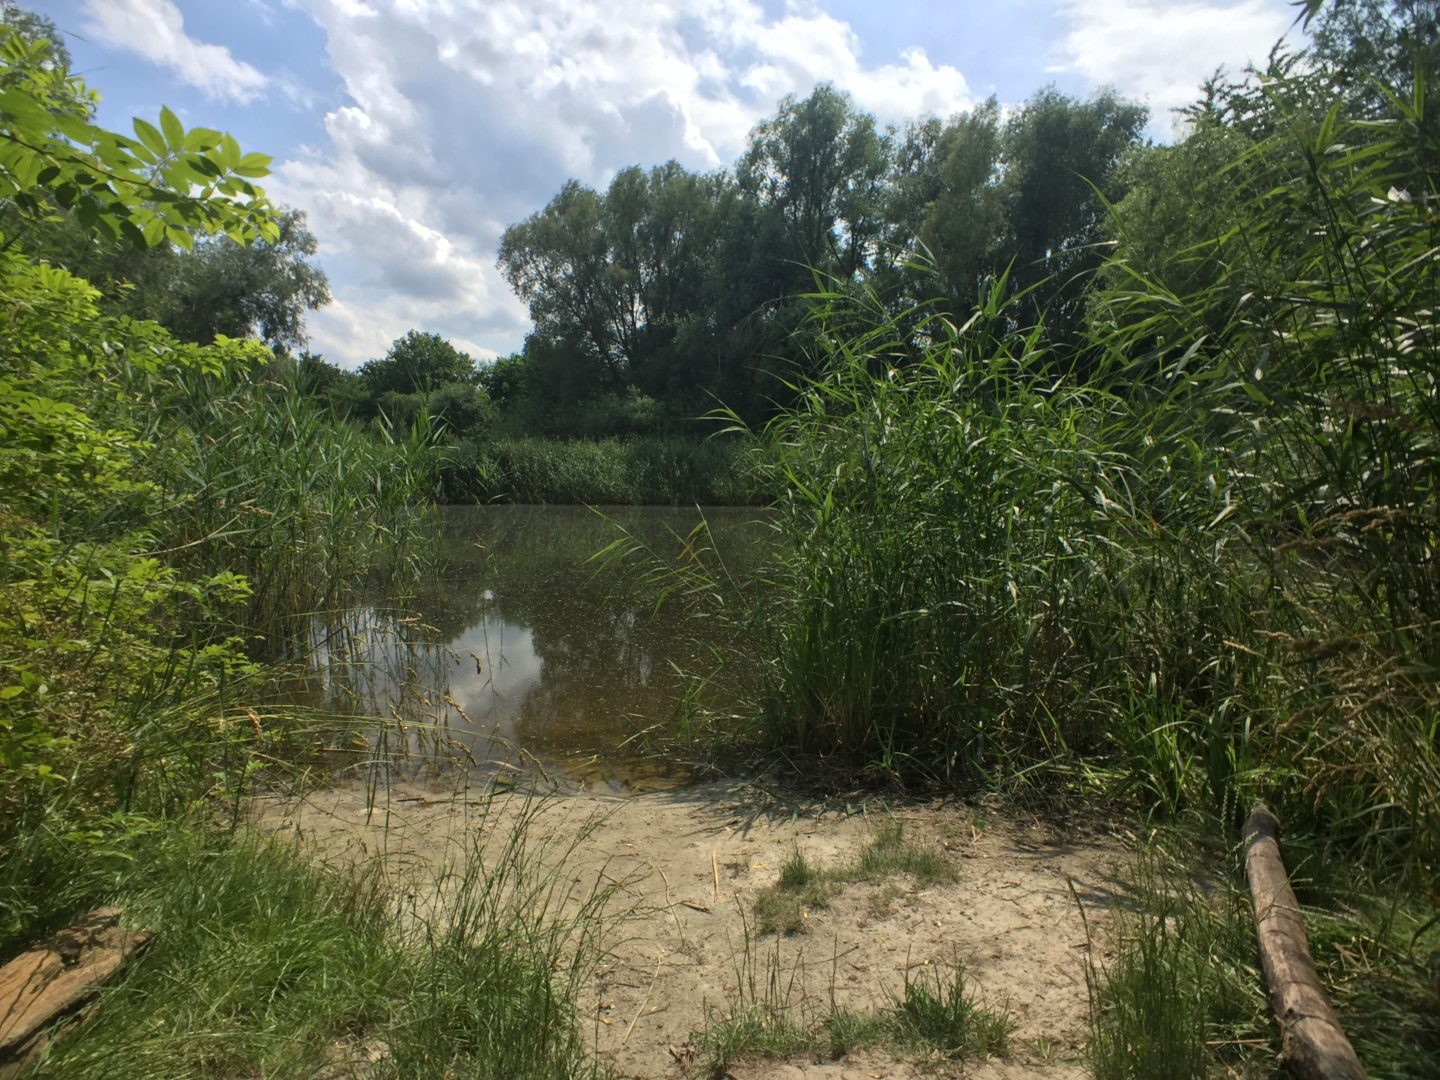 The pond called Rthepfuhl in Mariendorf, a district of Berlin. The pond is surrounded by trees and thick vegetation. A patch of sand is in the foreground. The pond water is cold and murky. The sun is shining by there are fluffy clouds in the sky.